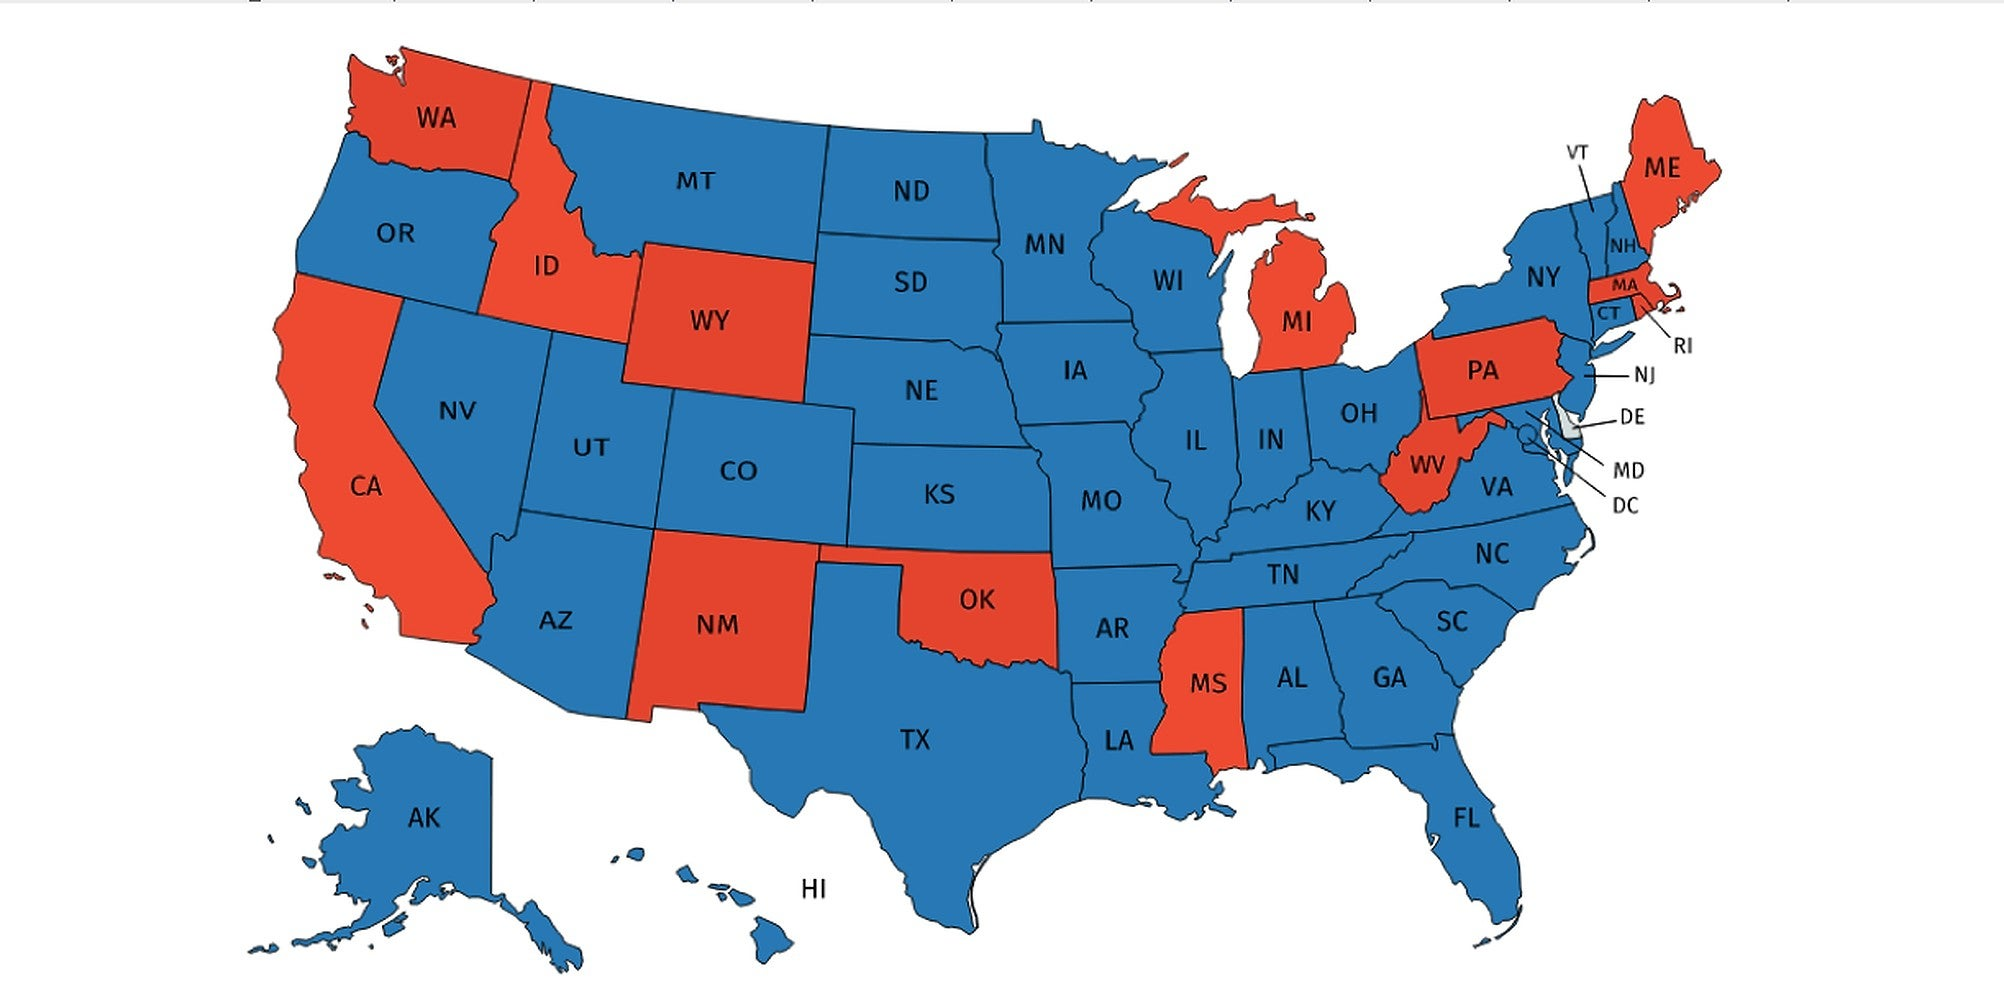 The US states with no lower age limit on marriage, mapped